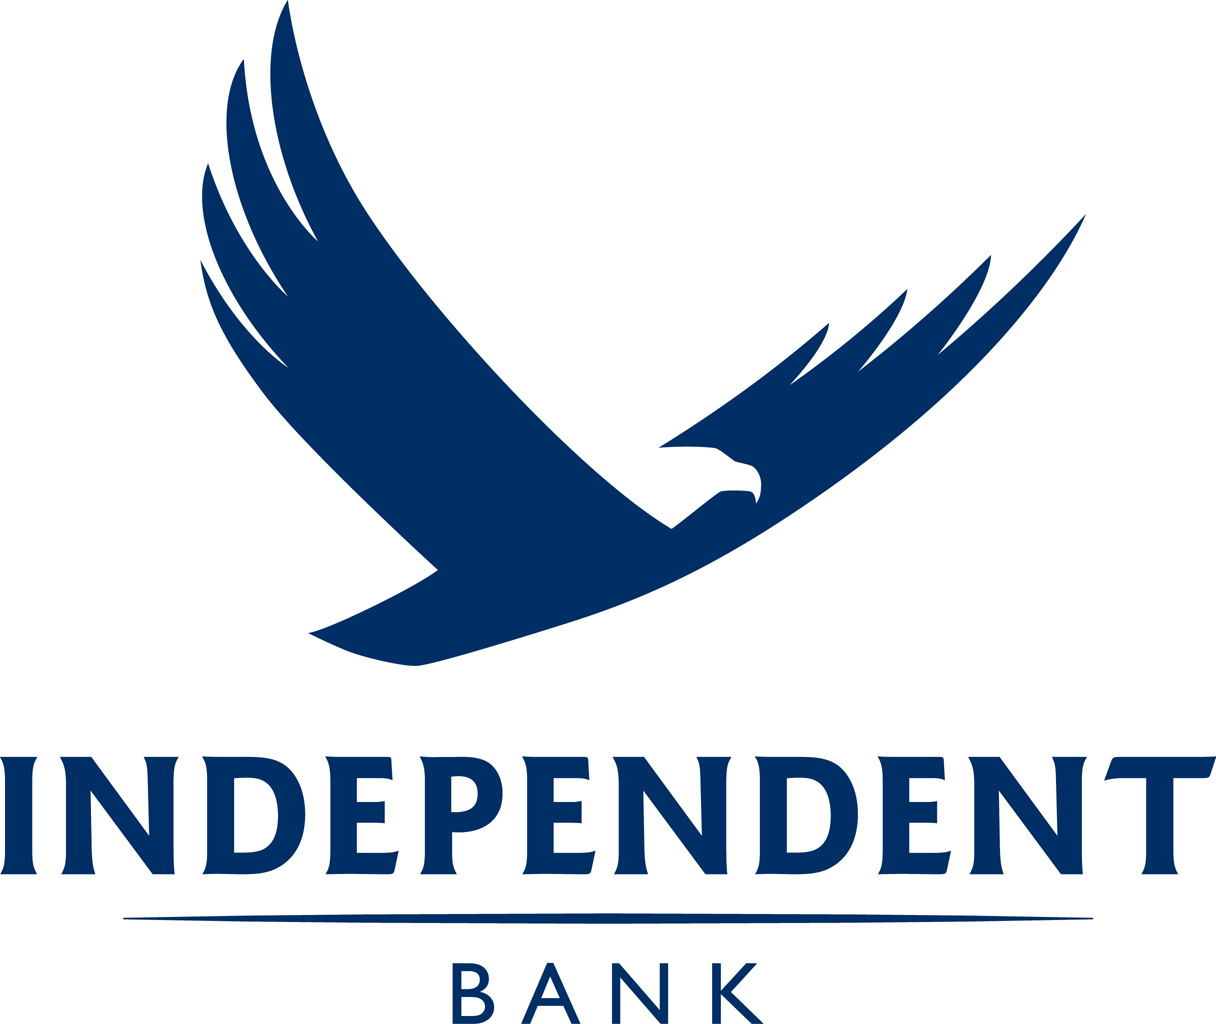 Independent Bank Corporation (IBCP) EPS Estimated At $0.32